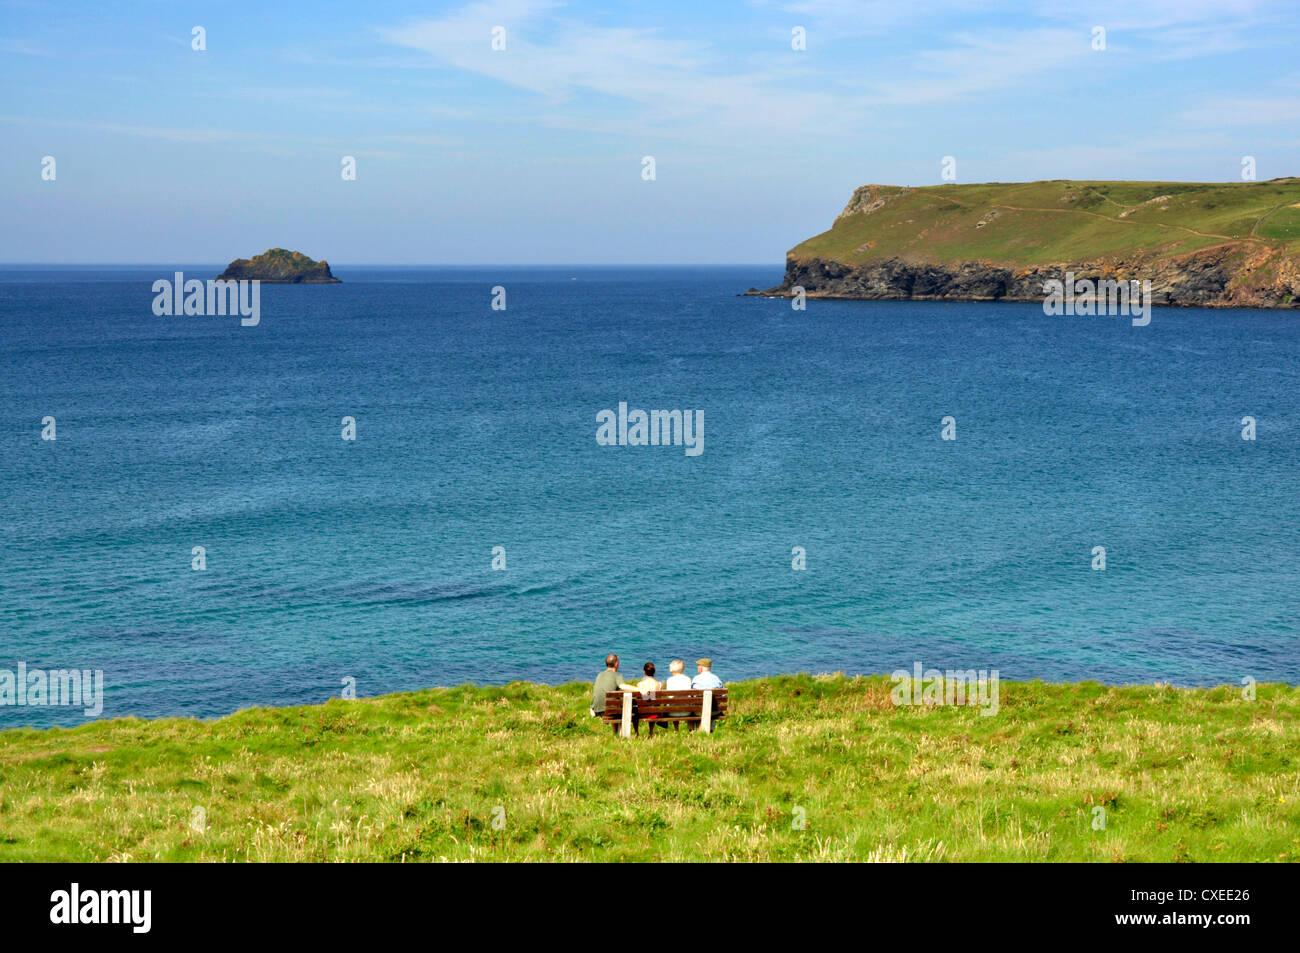 North Cornwall Coast Path - viewpoint to Pentire Point - across Hayle Bay - walkers resting on a bench - Stock Image